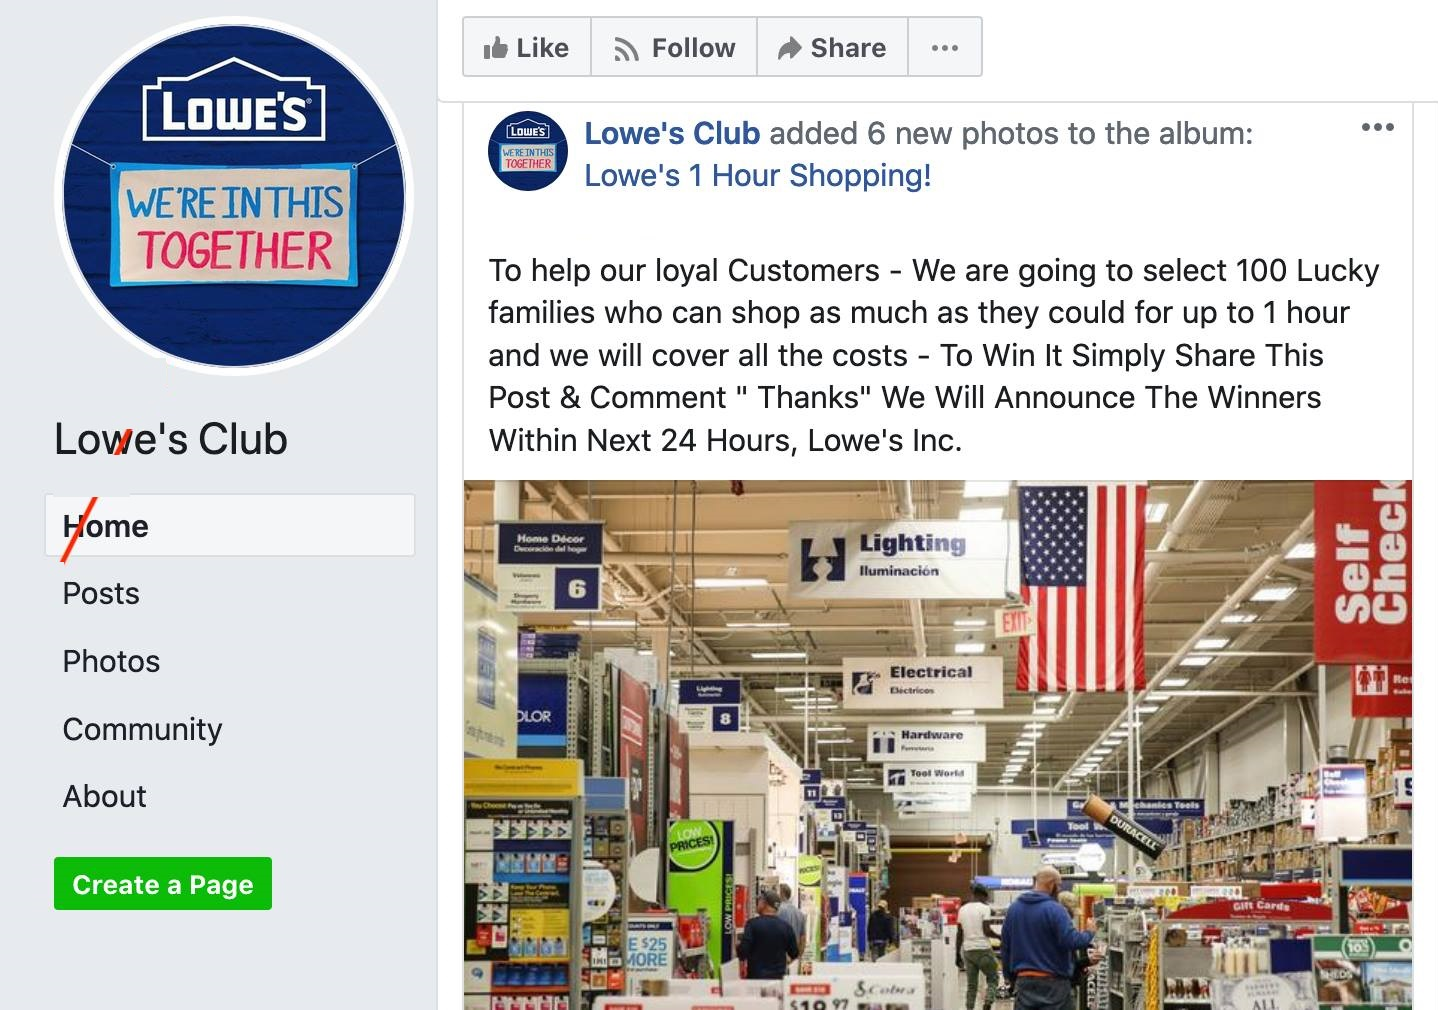 Lowes Facebook Scam, Lowes Club 1 Hour Shopping, Lowes Scam, Lowes Club Scam, Lowes Club, Lowes 1 Hour Shopping, Lowes Coupon Scam